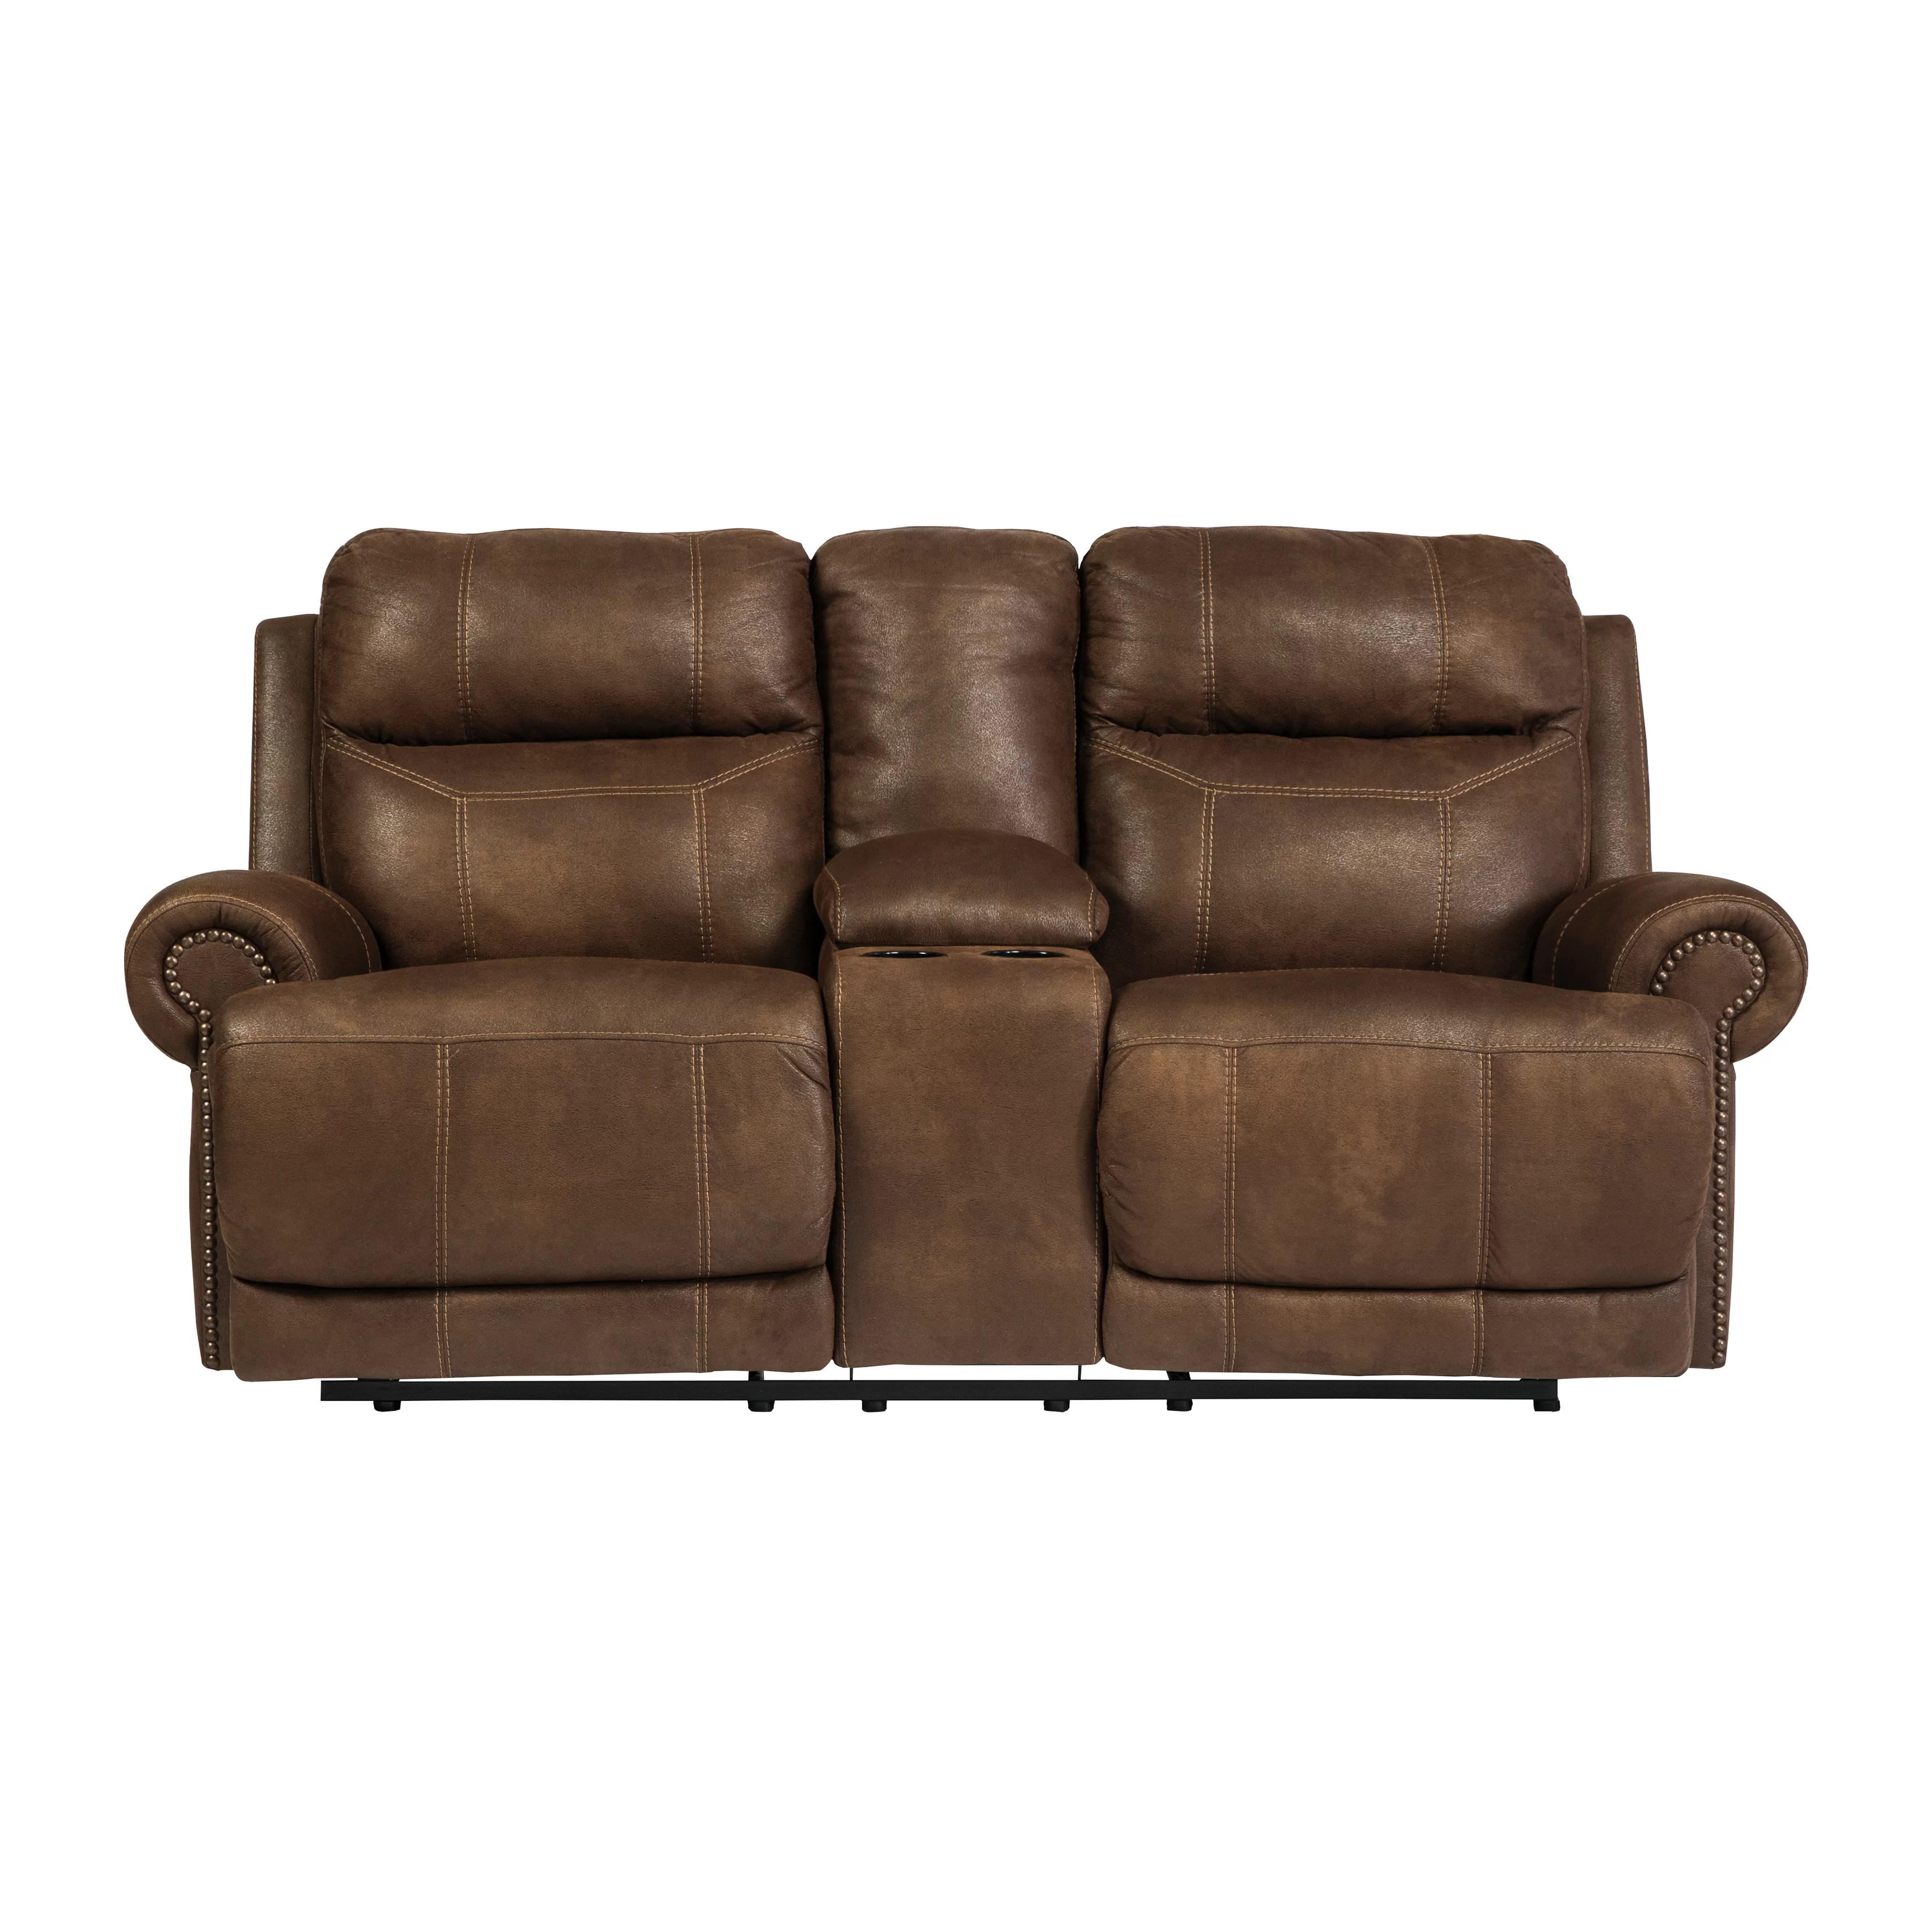 double sofa recliner saddlemen road deluxe touring seat signature design by ashley austere reclining